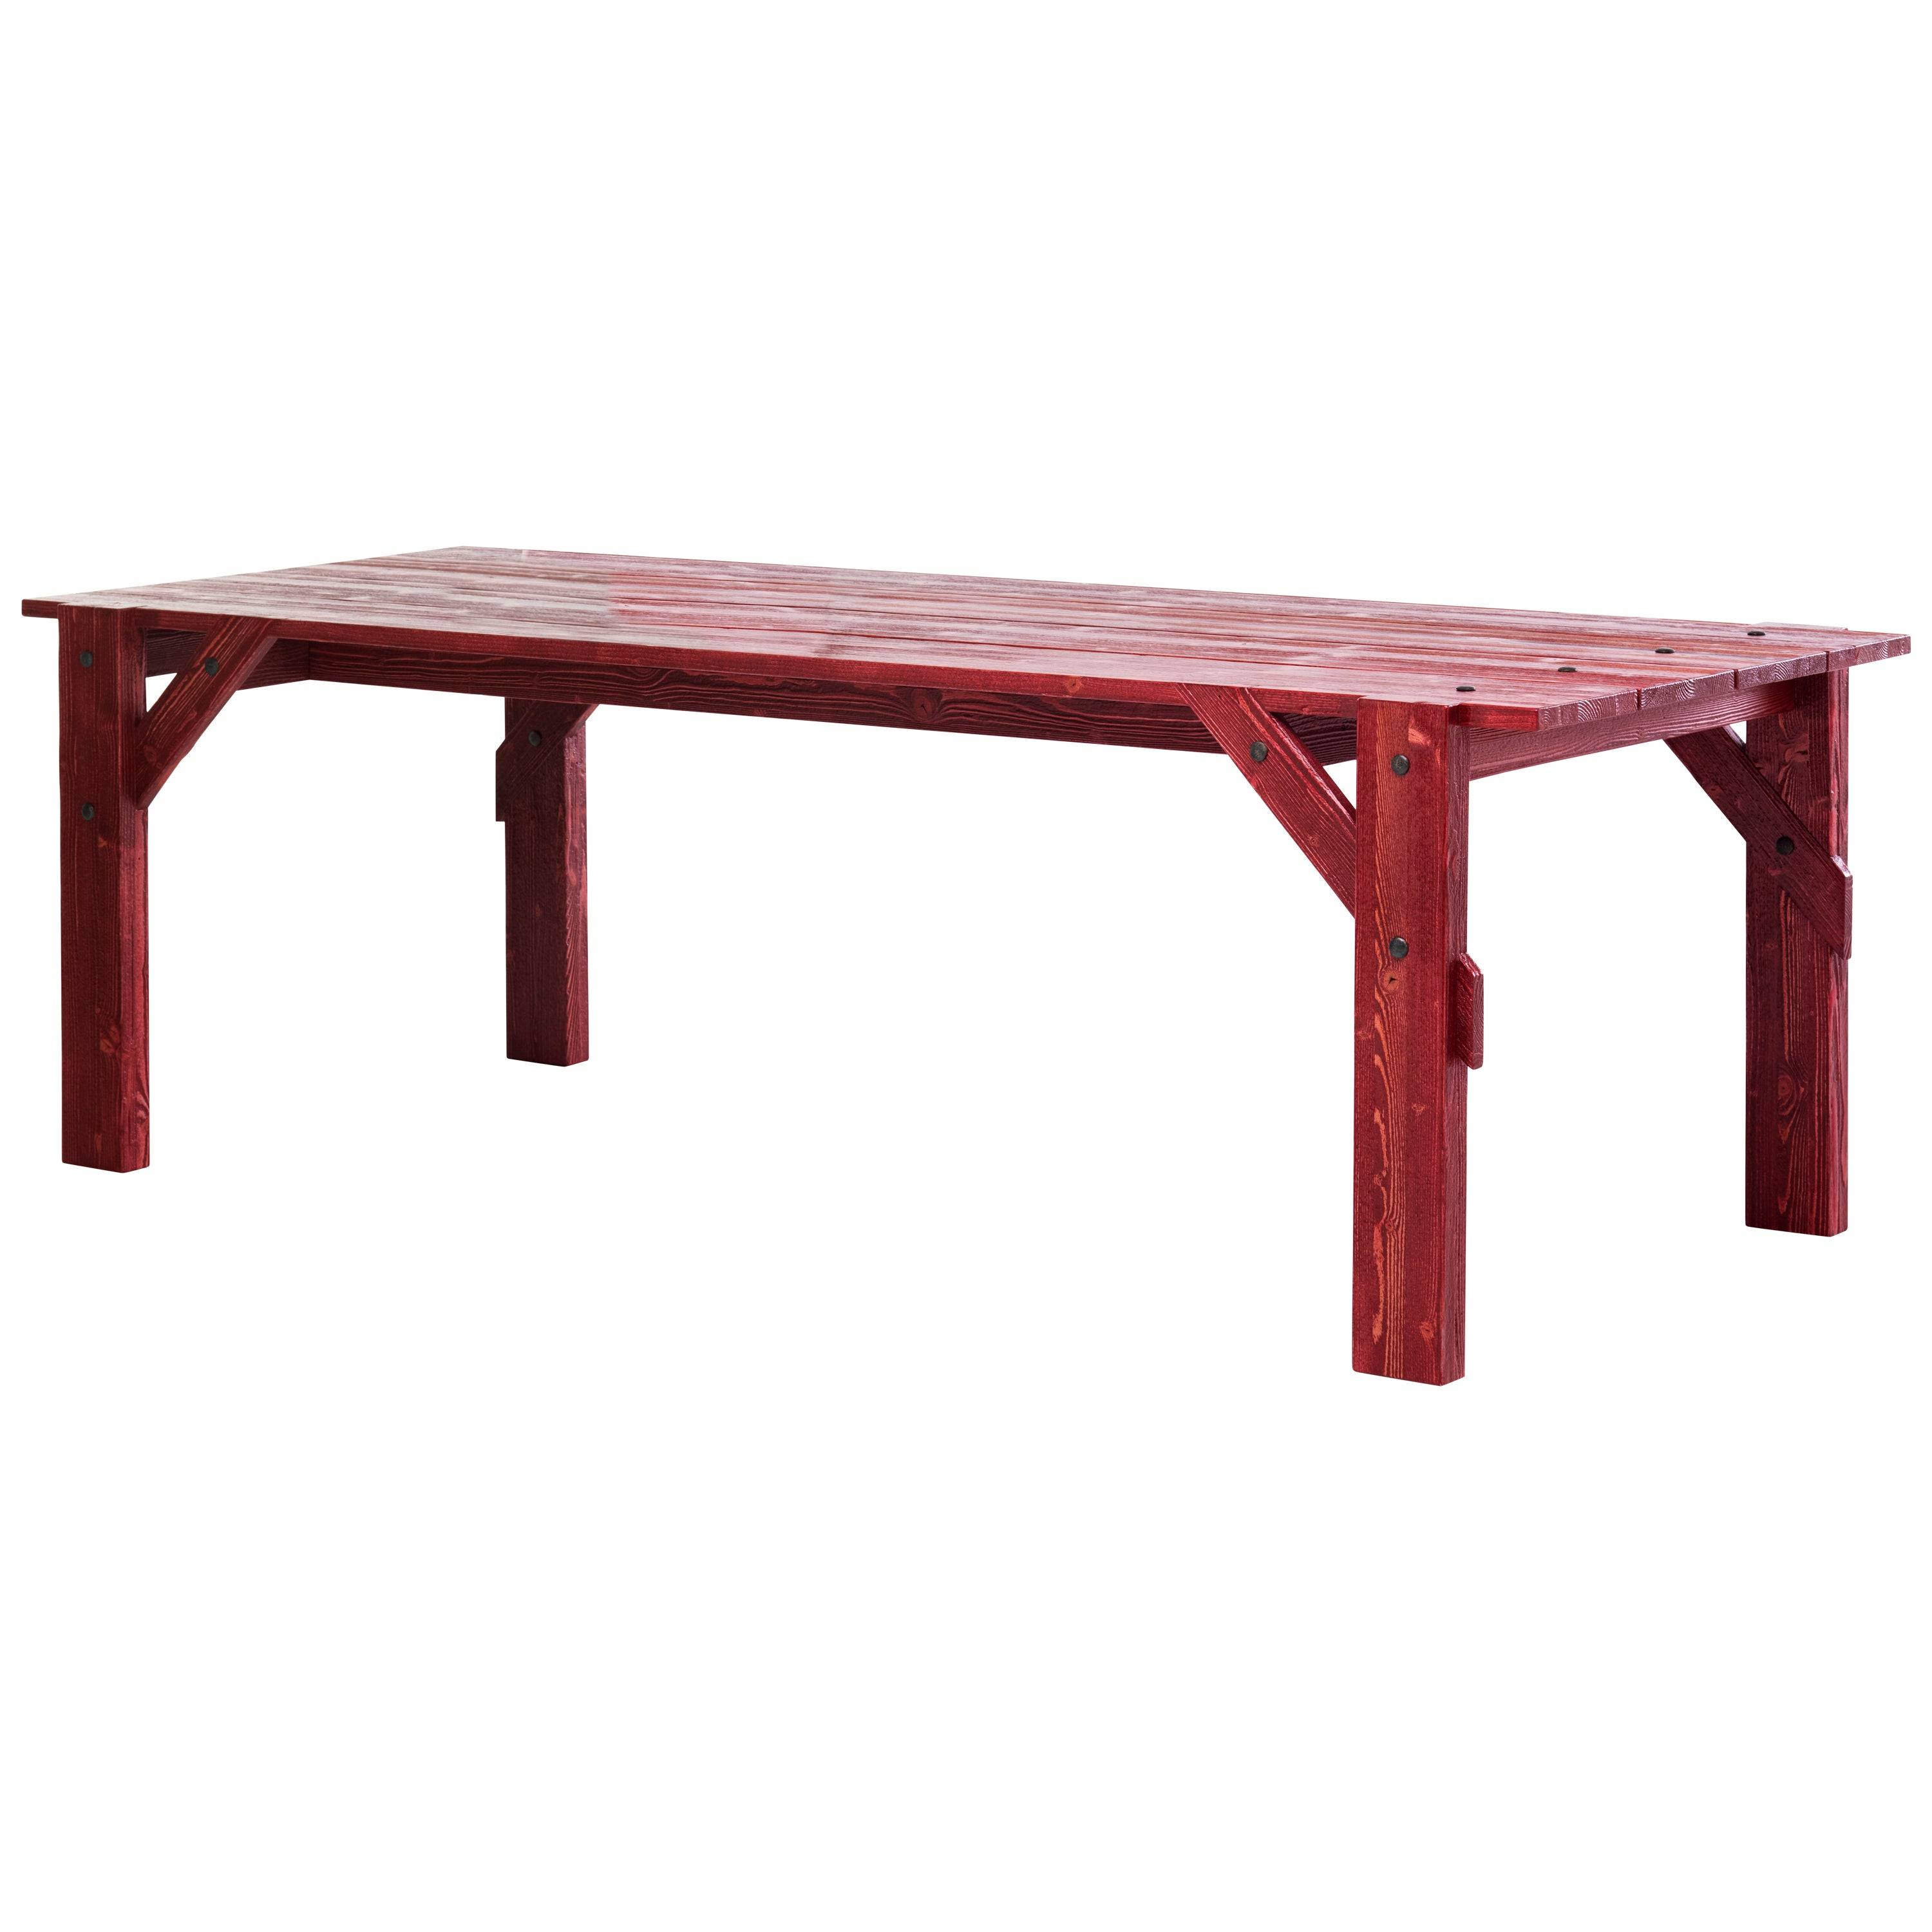 Large Officina Dining Table in Matte Finish by Mogg